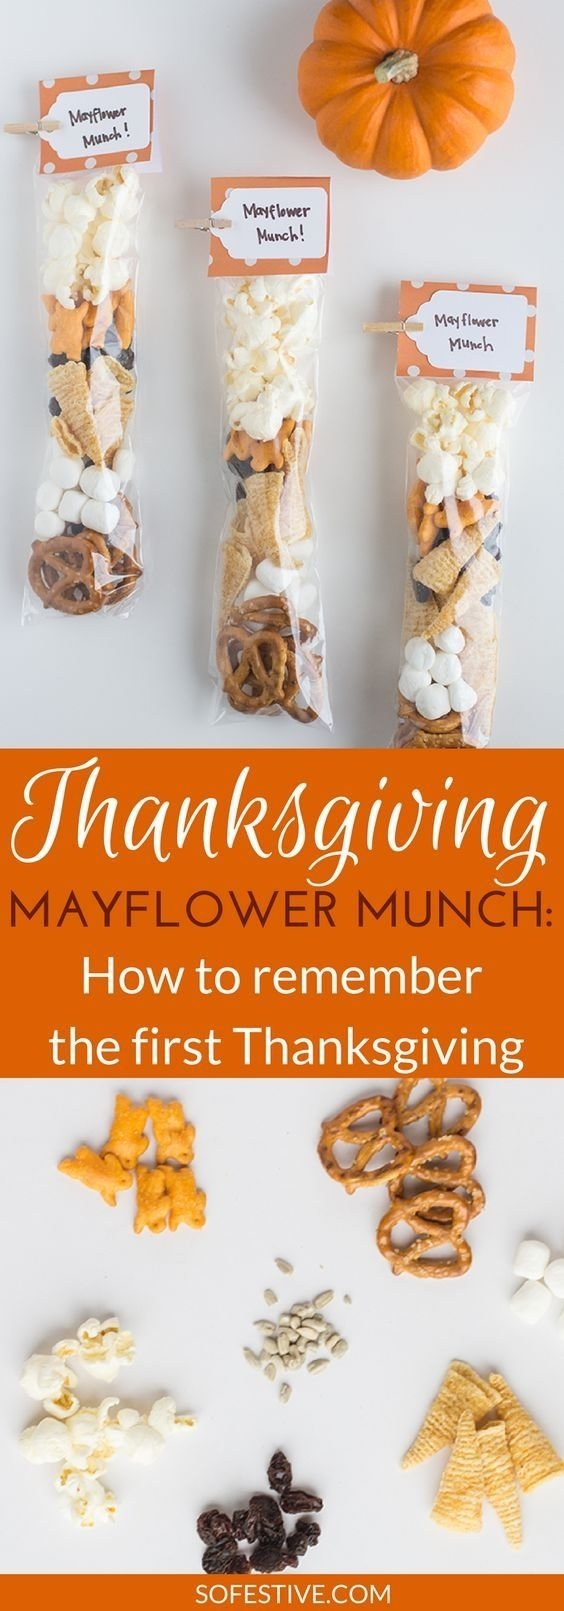 10 Ideal Thanksgiving Snack Ideas For Kids mayflower munch quick thanksgiving snack bags thanksgiving snacks